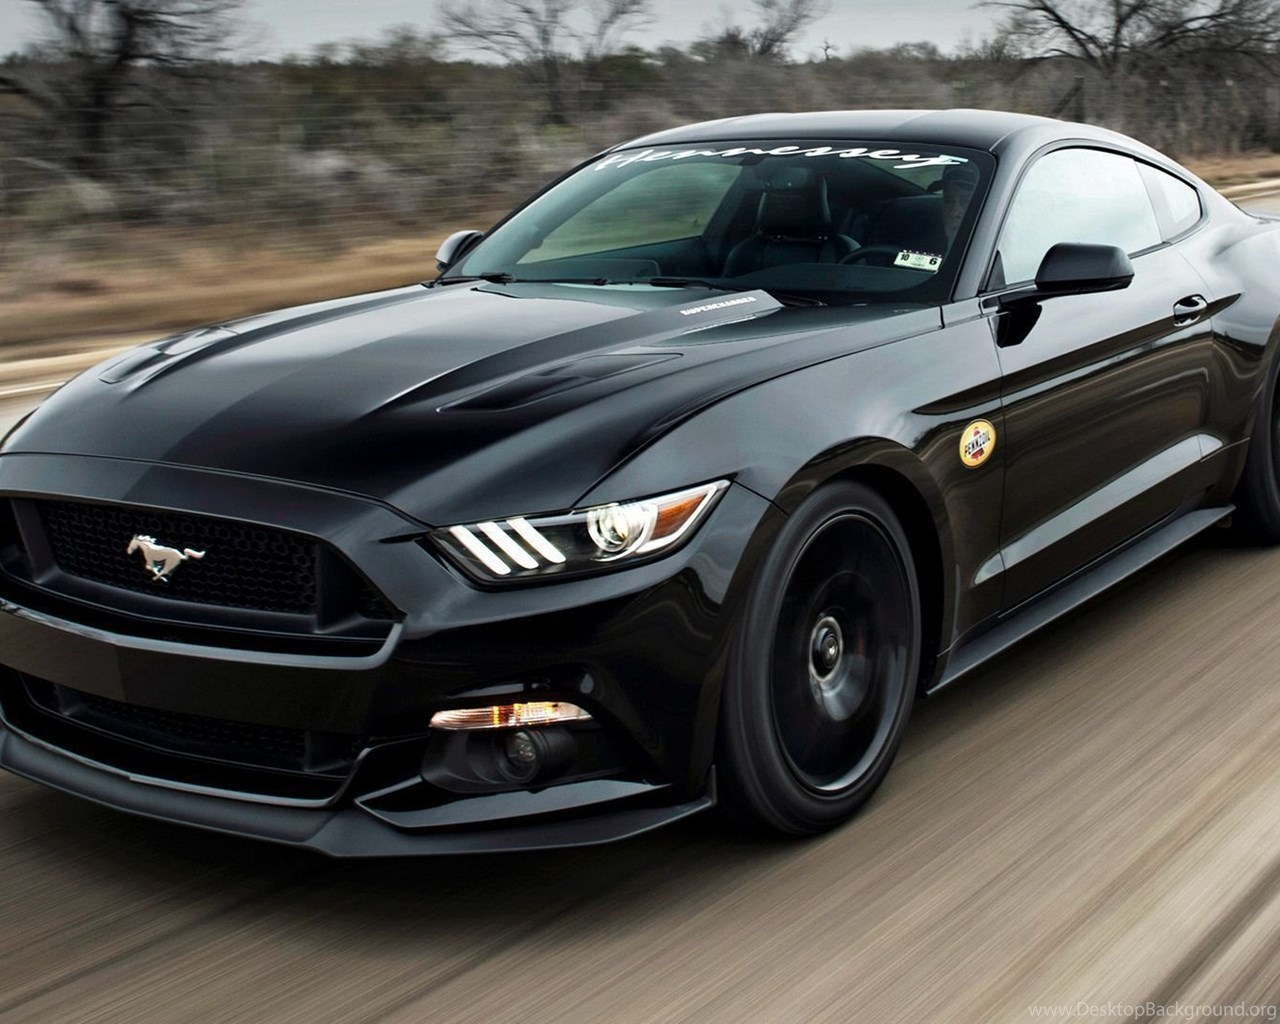 Hennessey Mustang Gt Hpe700 Supercharged 2015 Wallpapers And Hd